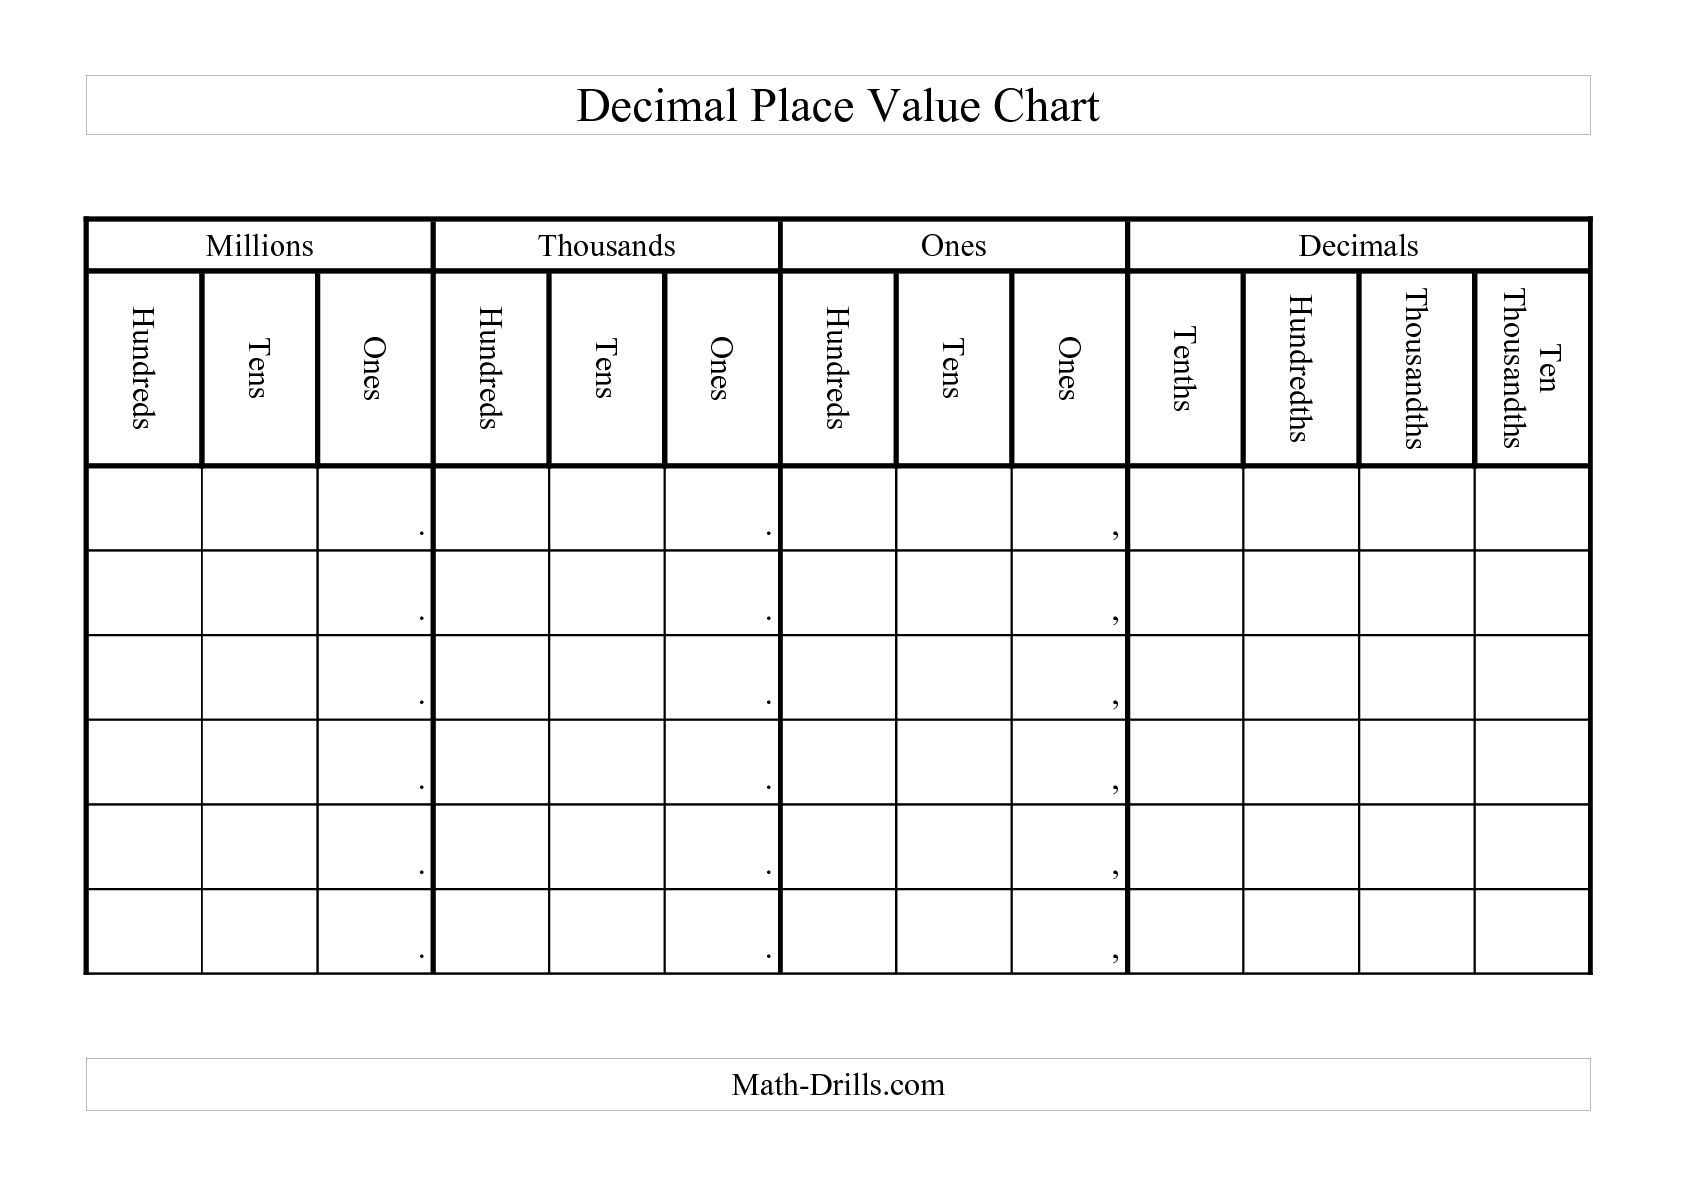 Teach Child How To Read Place Value Chart Worksheets